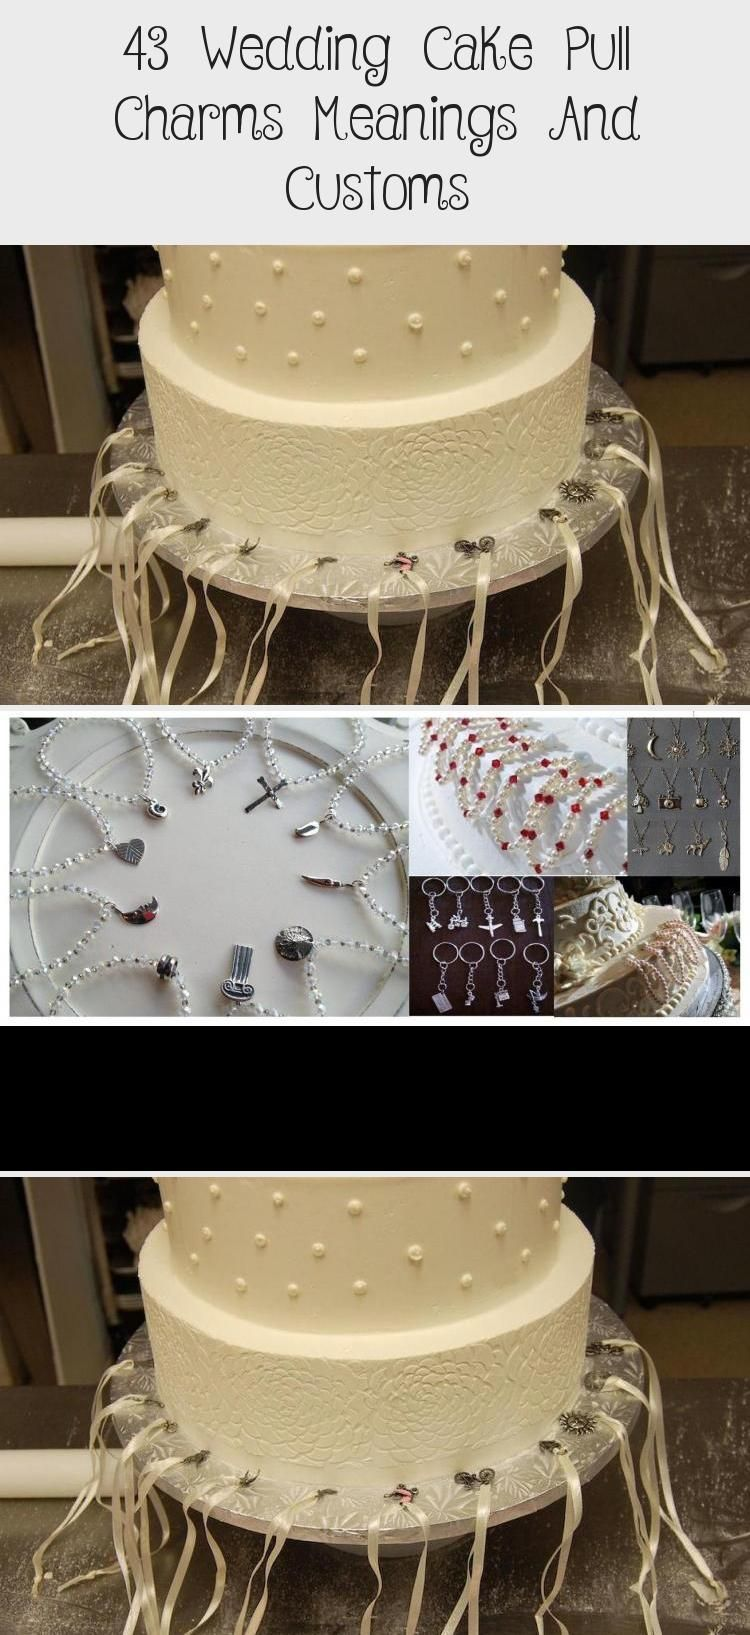 43 Wedding Cake Pull Charms Meanings And Customs Curious And Cozy Country Chocolat Ateau Mariage Cake Ca In 2020 Wedding Cake Pull Charms Cake Pull Charms Cake Pulls